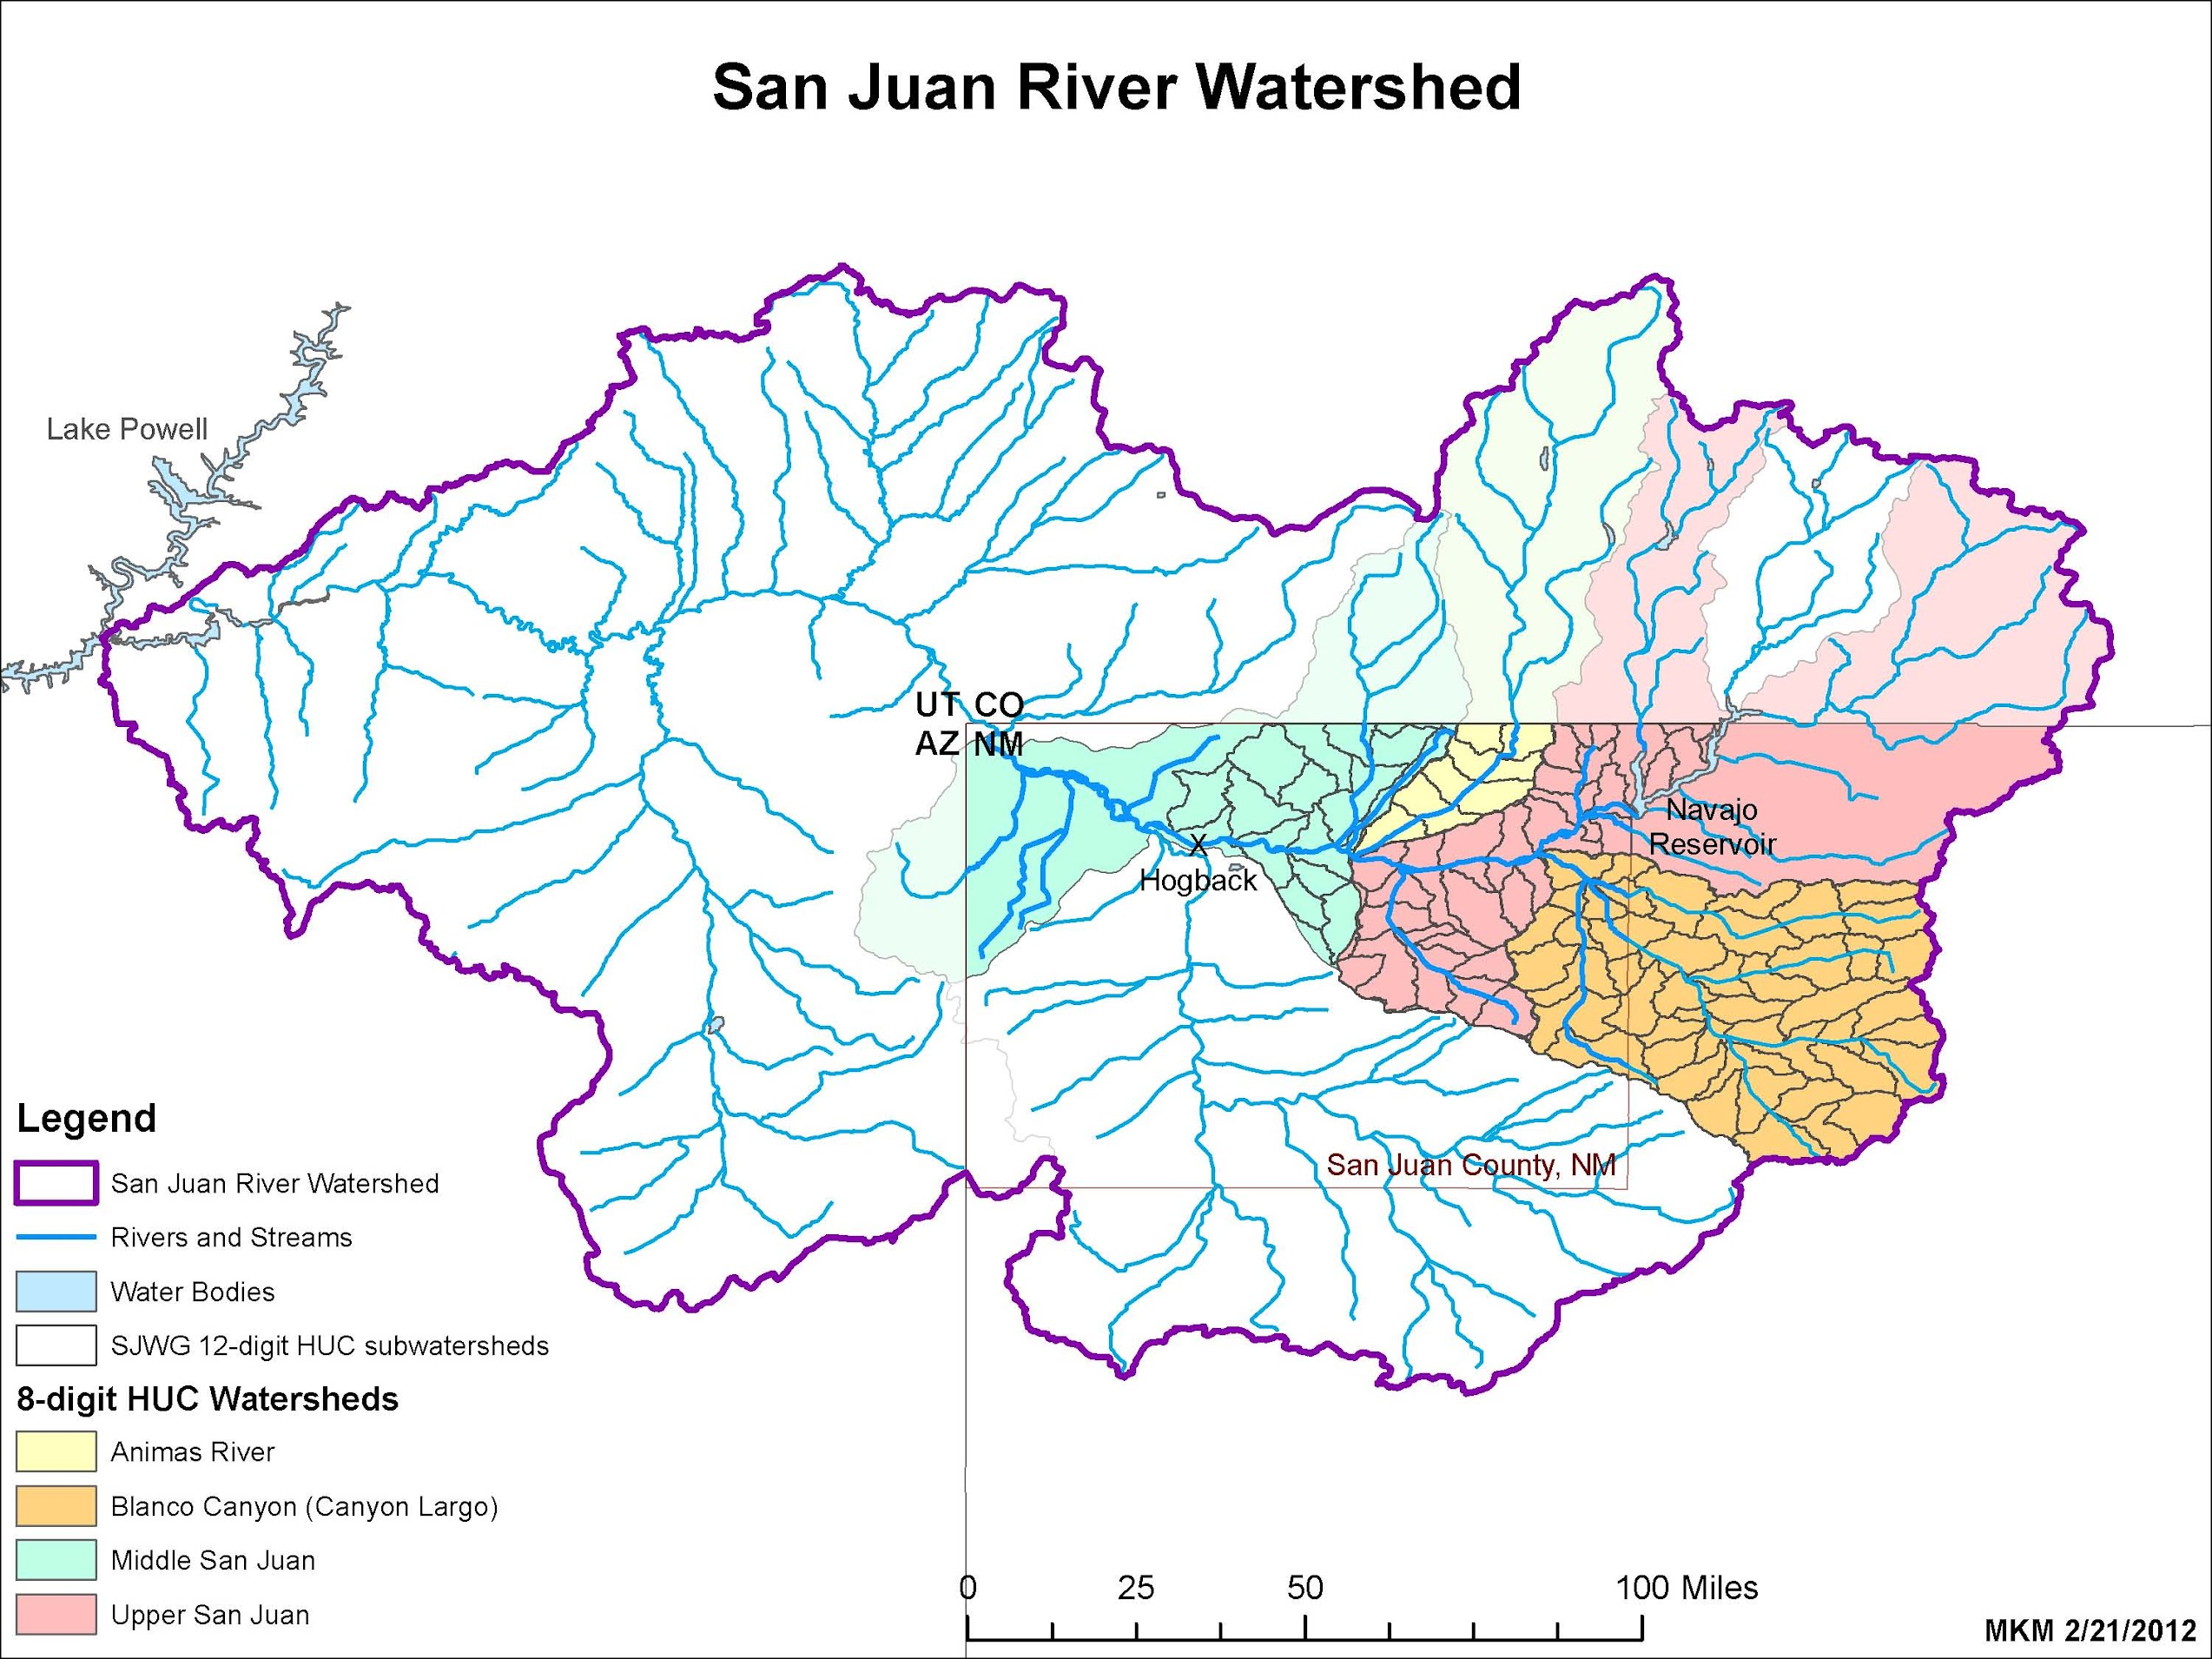 Watershed Map - San Juan Watershed Group on virgin river, colorado map, fraser river, new mexico map, gunnison river, canadian river map, arkansas river, sevier river map, the missouri river map, dirty devil river, san juan mountains, blue river, monument valley map, platte river map, rio grande, colorado river, snake river map, green river, yampa river, glen canyon, flaming gorge reservoir, yellowstone national park map, lake powell, san lorenzo river map, rio blanco map, san bernard river map, nicaragua river map, verde river, the seine river map, san juan county, arizona map, usa river map, gila river, animas river, valley of the gods, arkansas river map, charleston sc river map, blue mesa reservoir, costa rica map, grand canyon map,